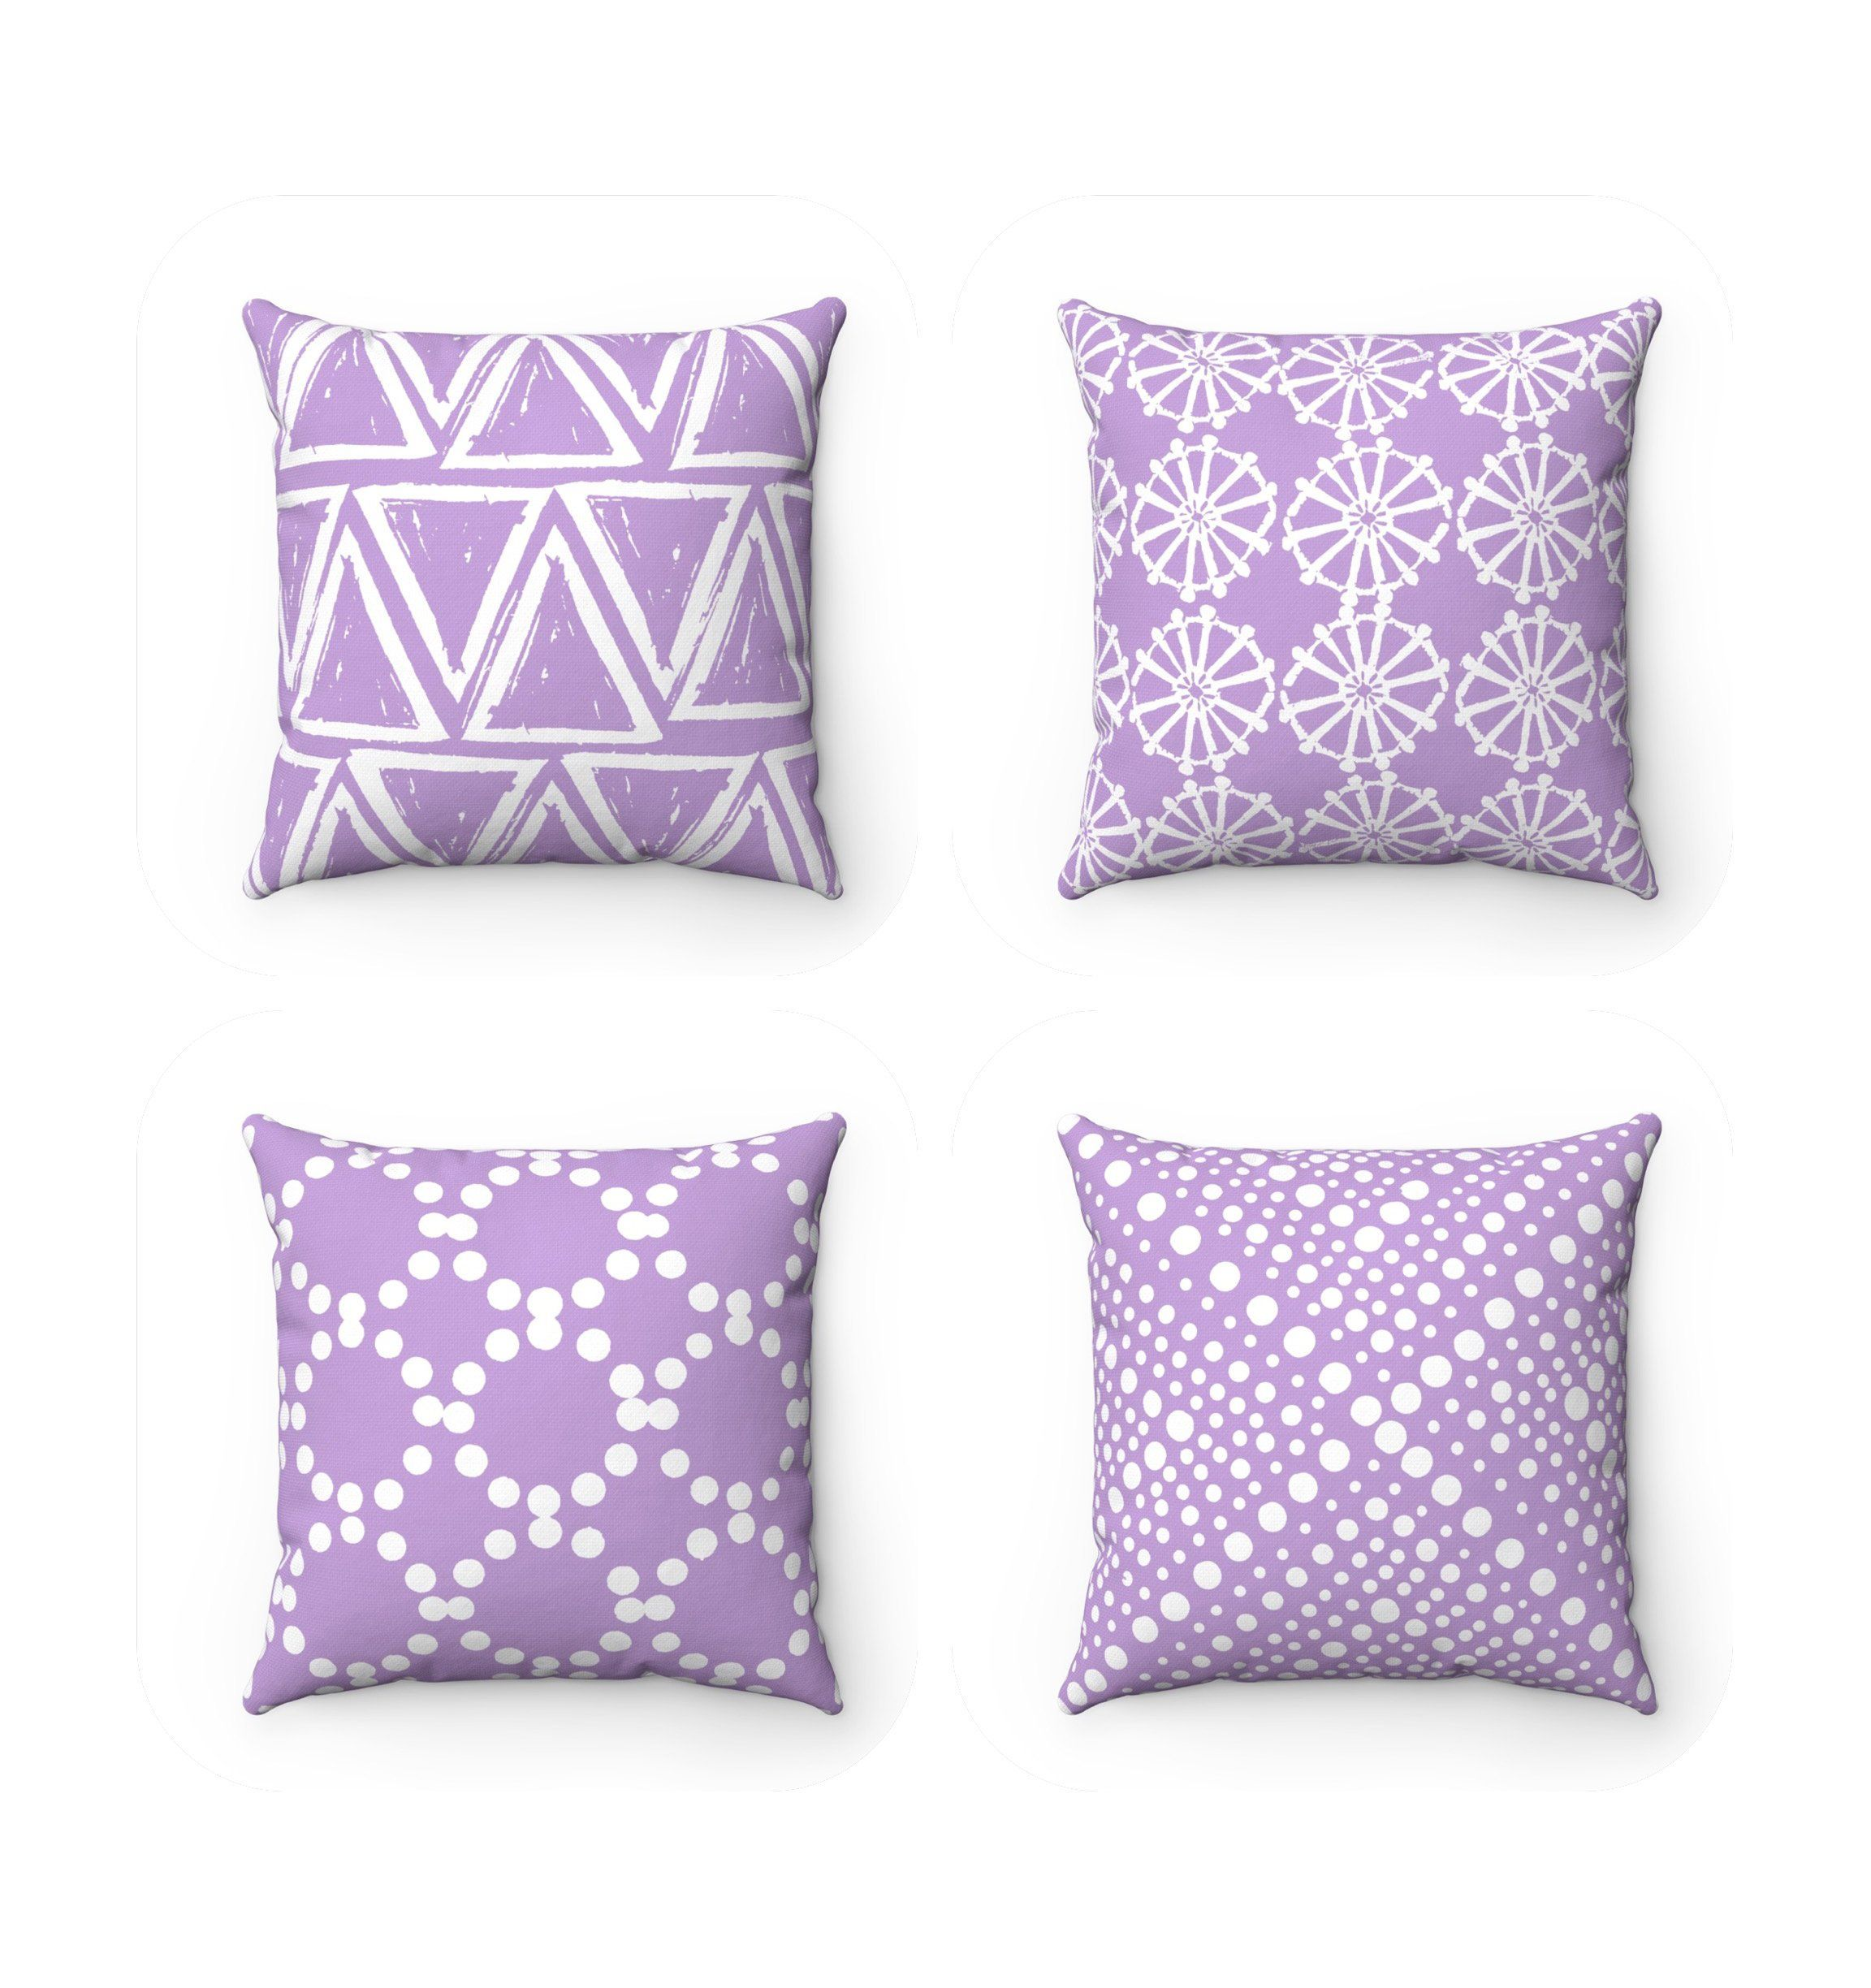 Outdoor Throw Pillow Lavender Patio Cushion 16 18 20 Inch